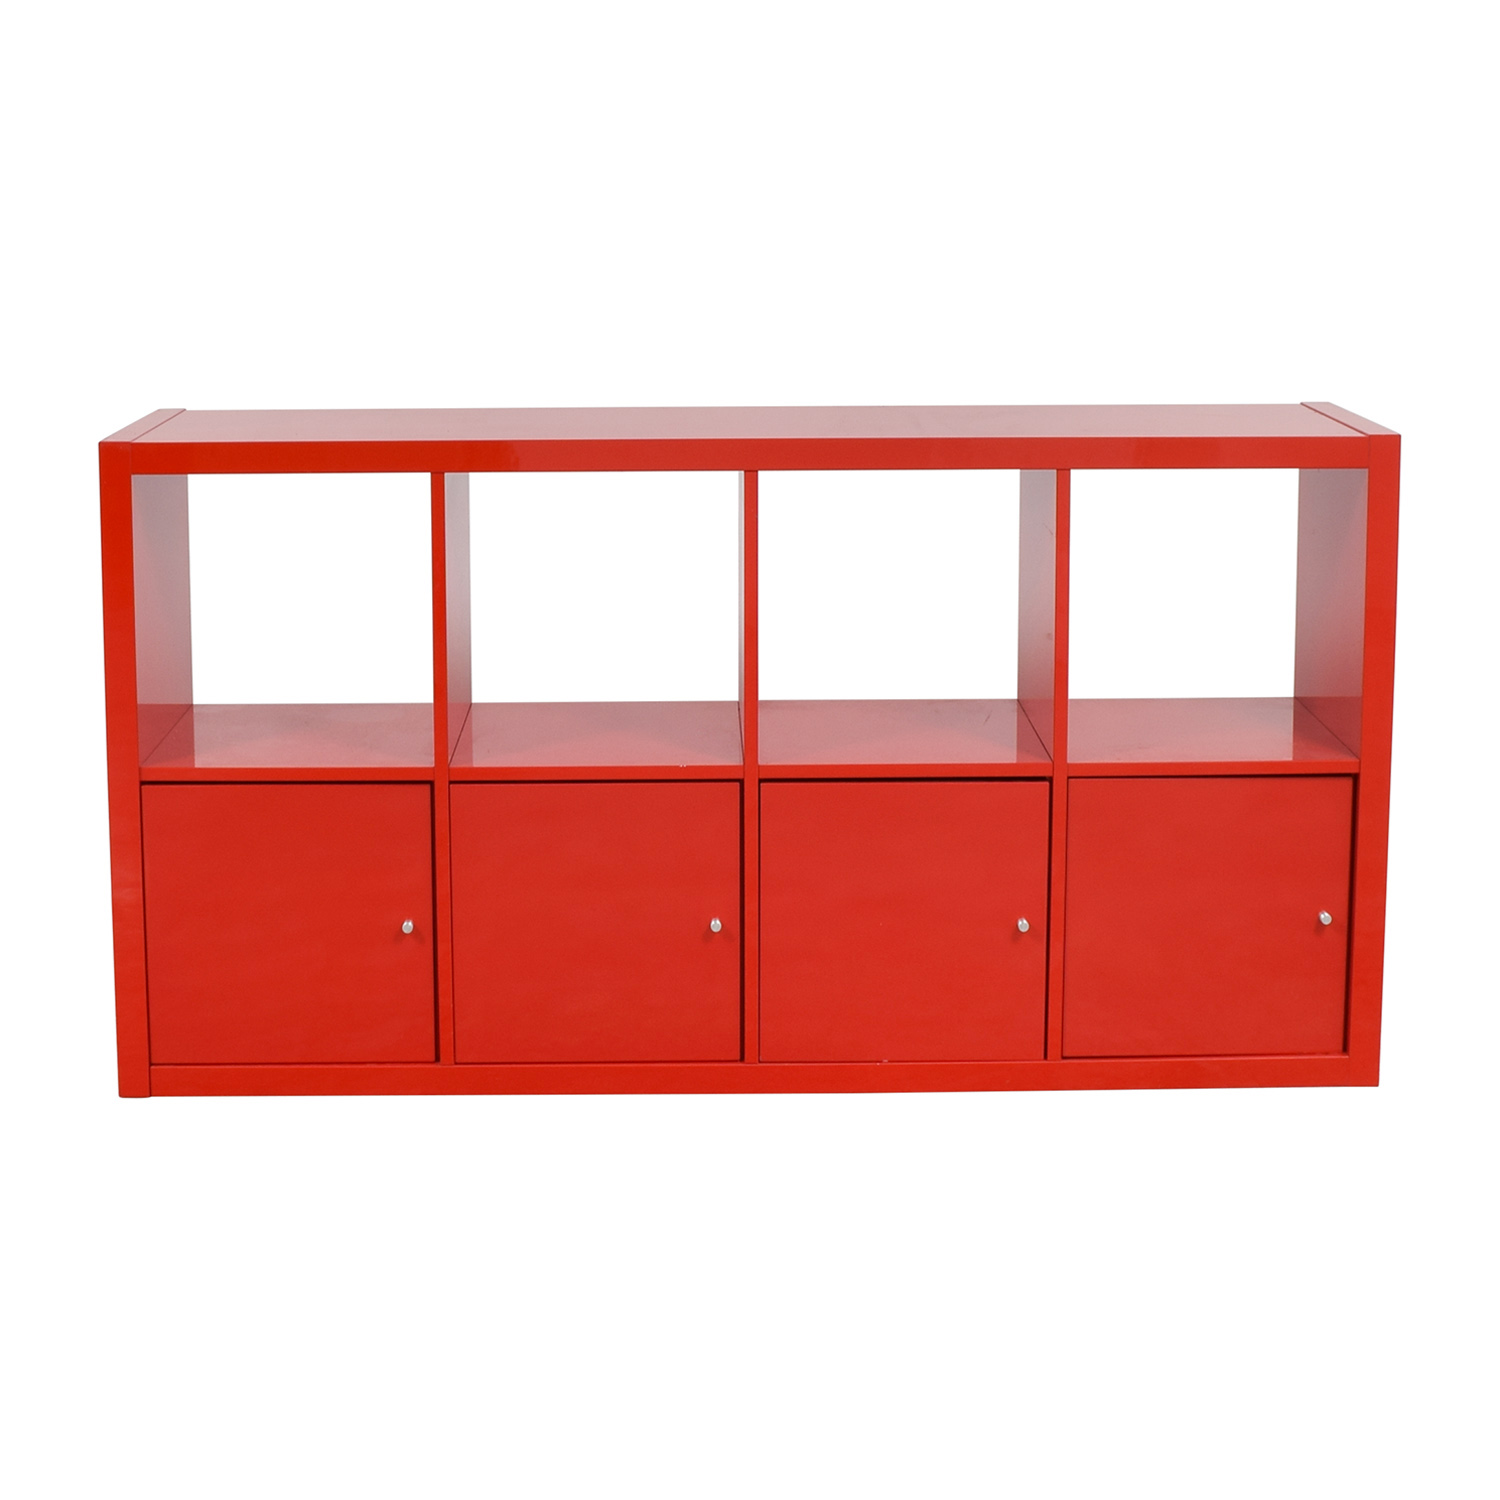 Ikea Red Shelving With Storage Cabinets Bookcases